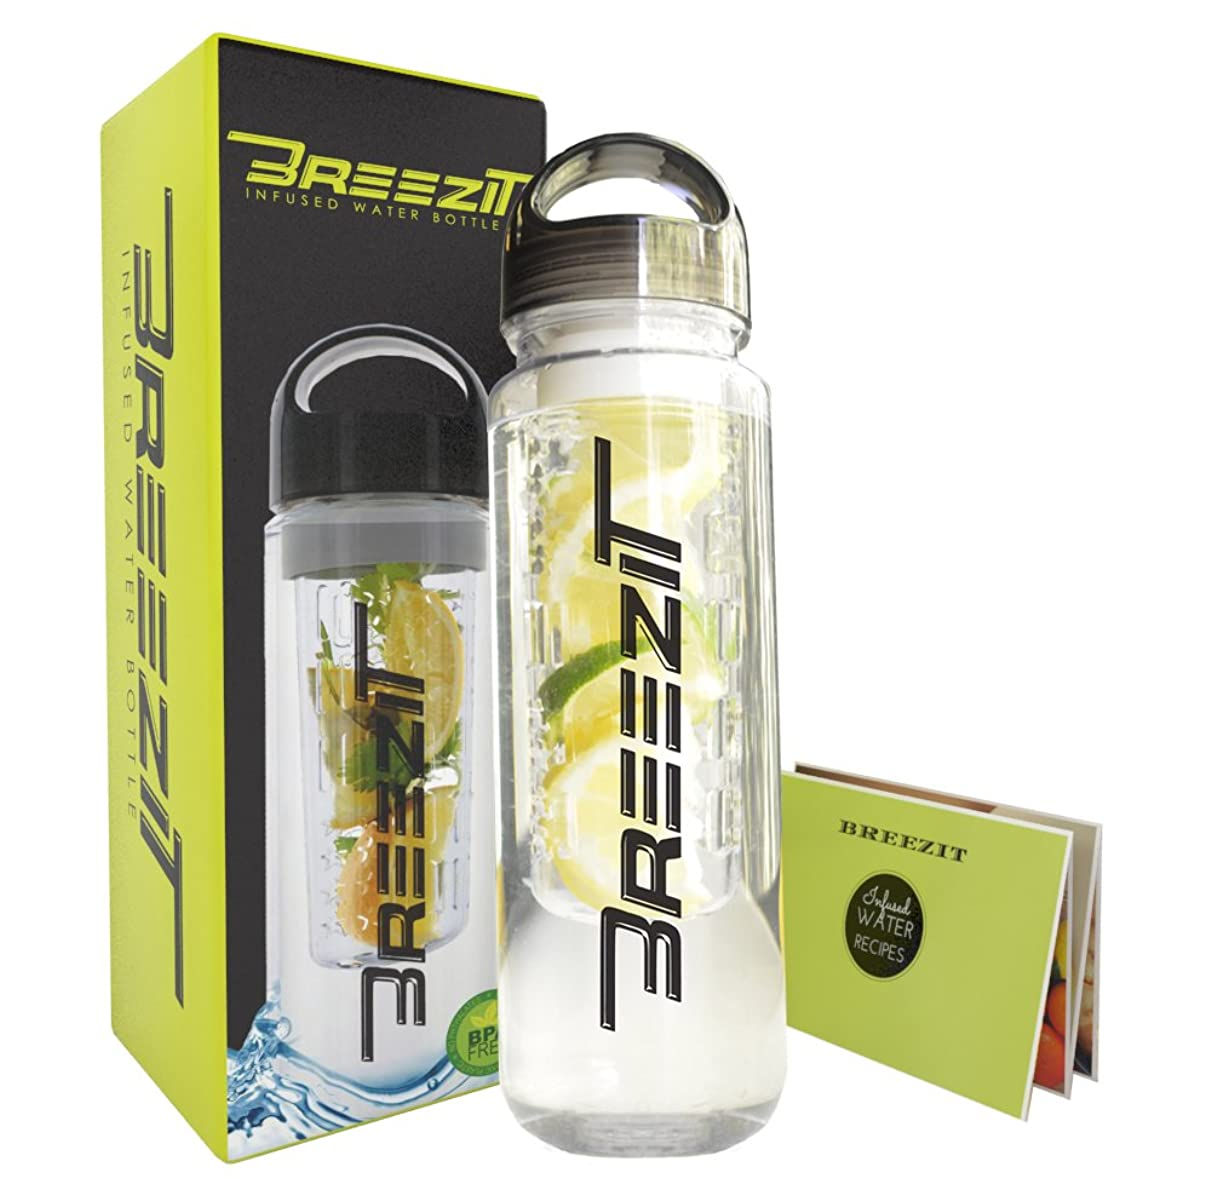 Breezit 24Oz Sports Water Bottle with Infusers-Multiple Colors-BPA Free Tritan Plastic-Dual Purpose Travel Bottles with Removable Infuser-Enjoy Infused Water with Included Fruit Infusion Recipe